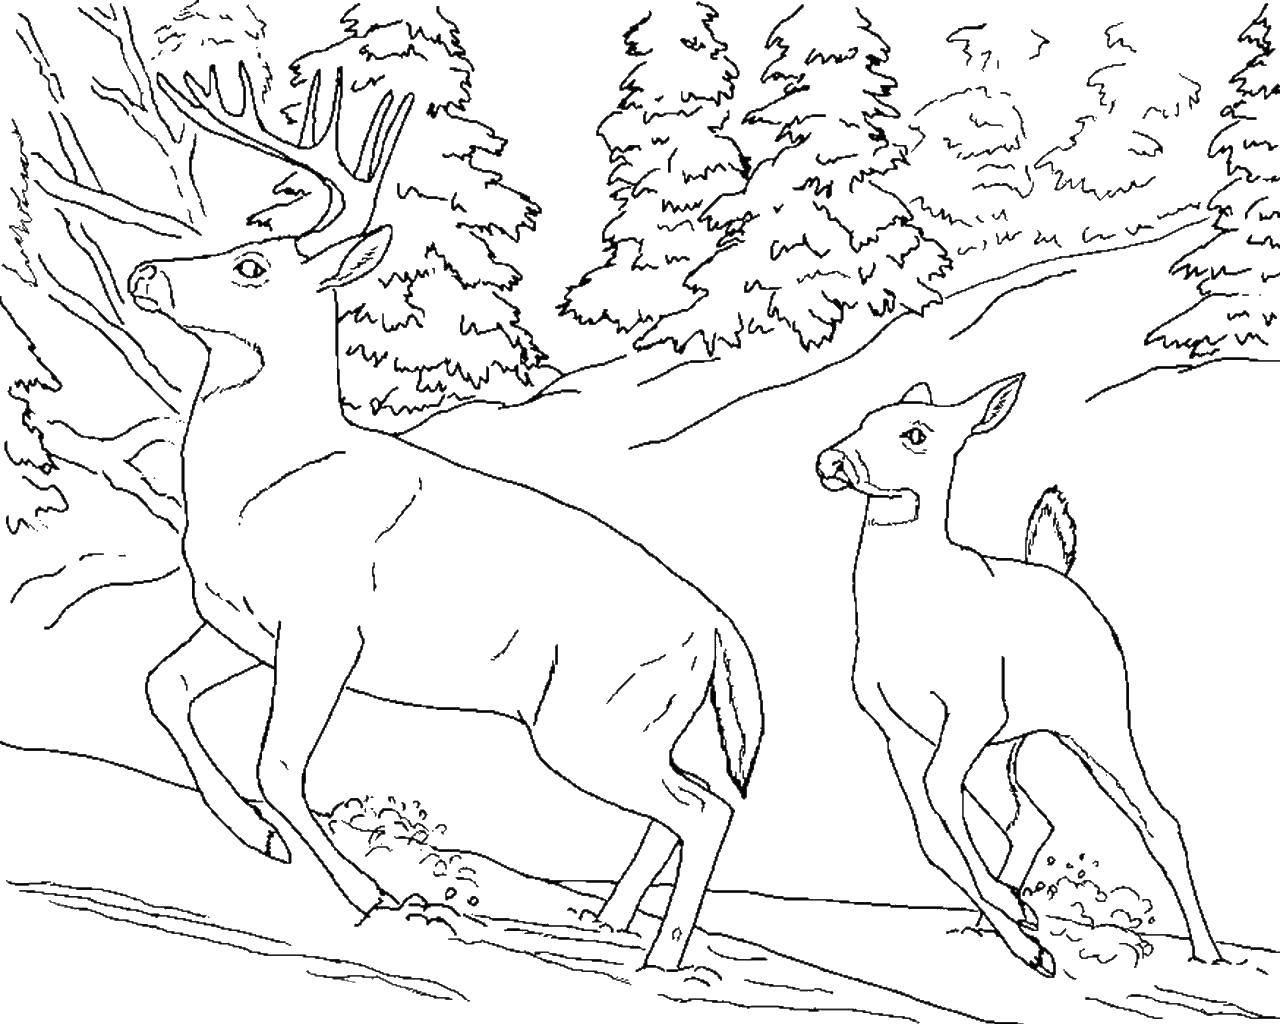 Coloring Deer in the mountains Download animals, deer, winter, snow, mountains.  Print ,Animals,